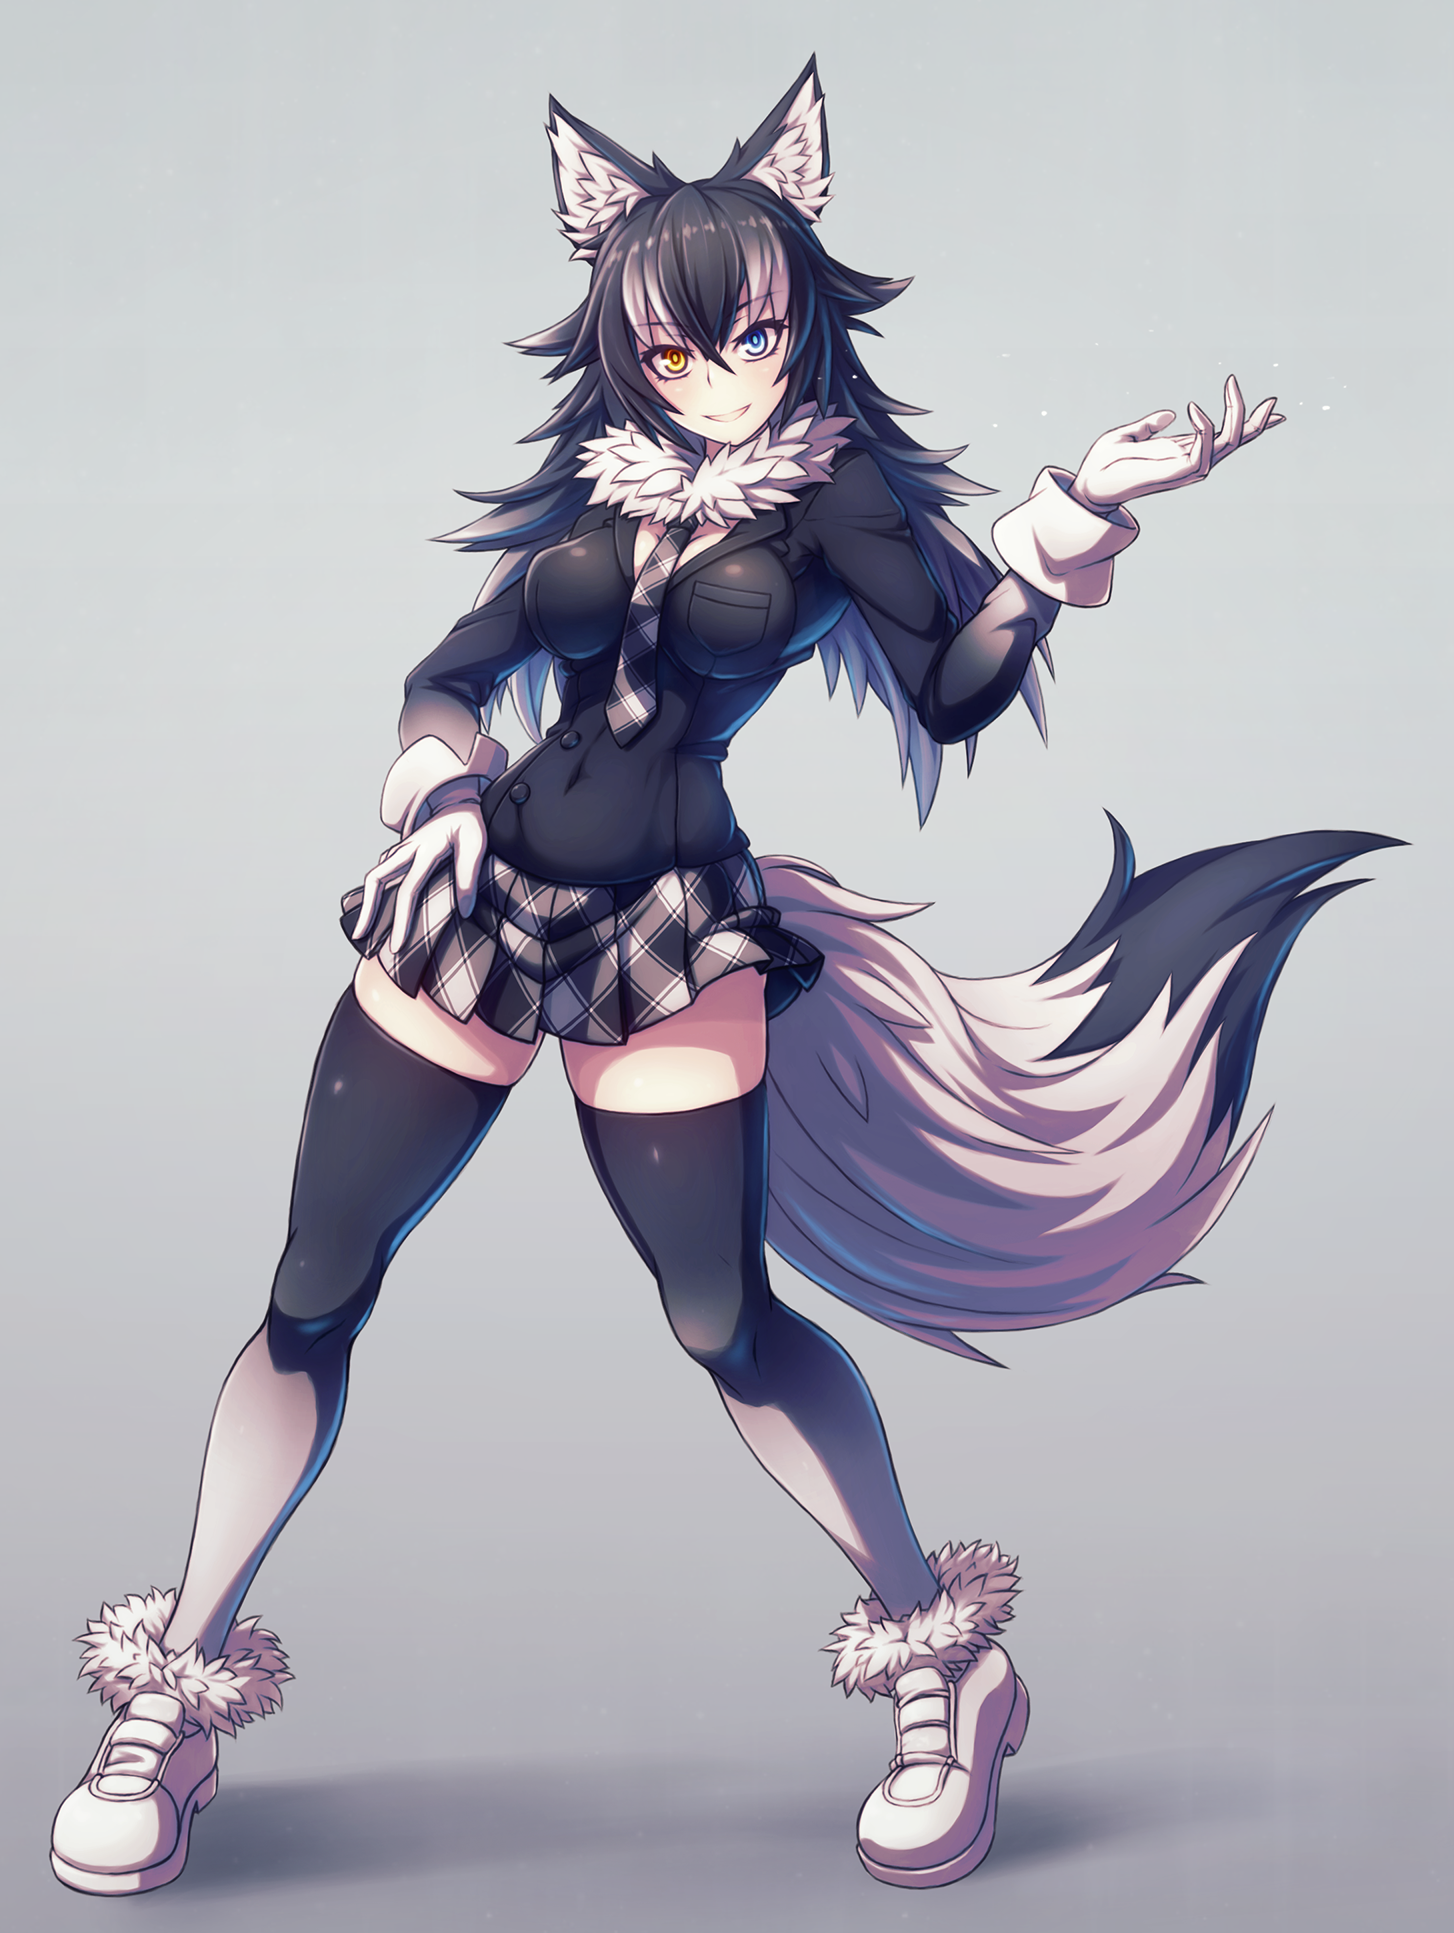 Kemono friends kemonomimi anime girl animal girl wolf girl